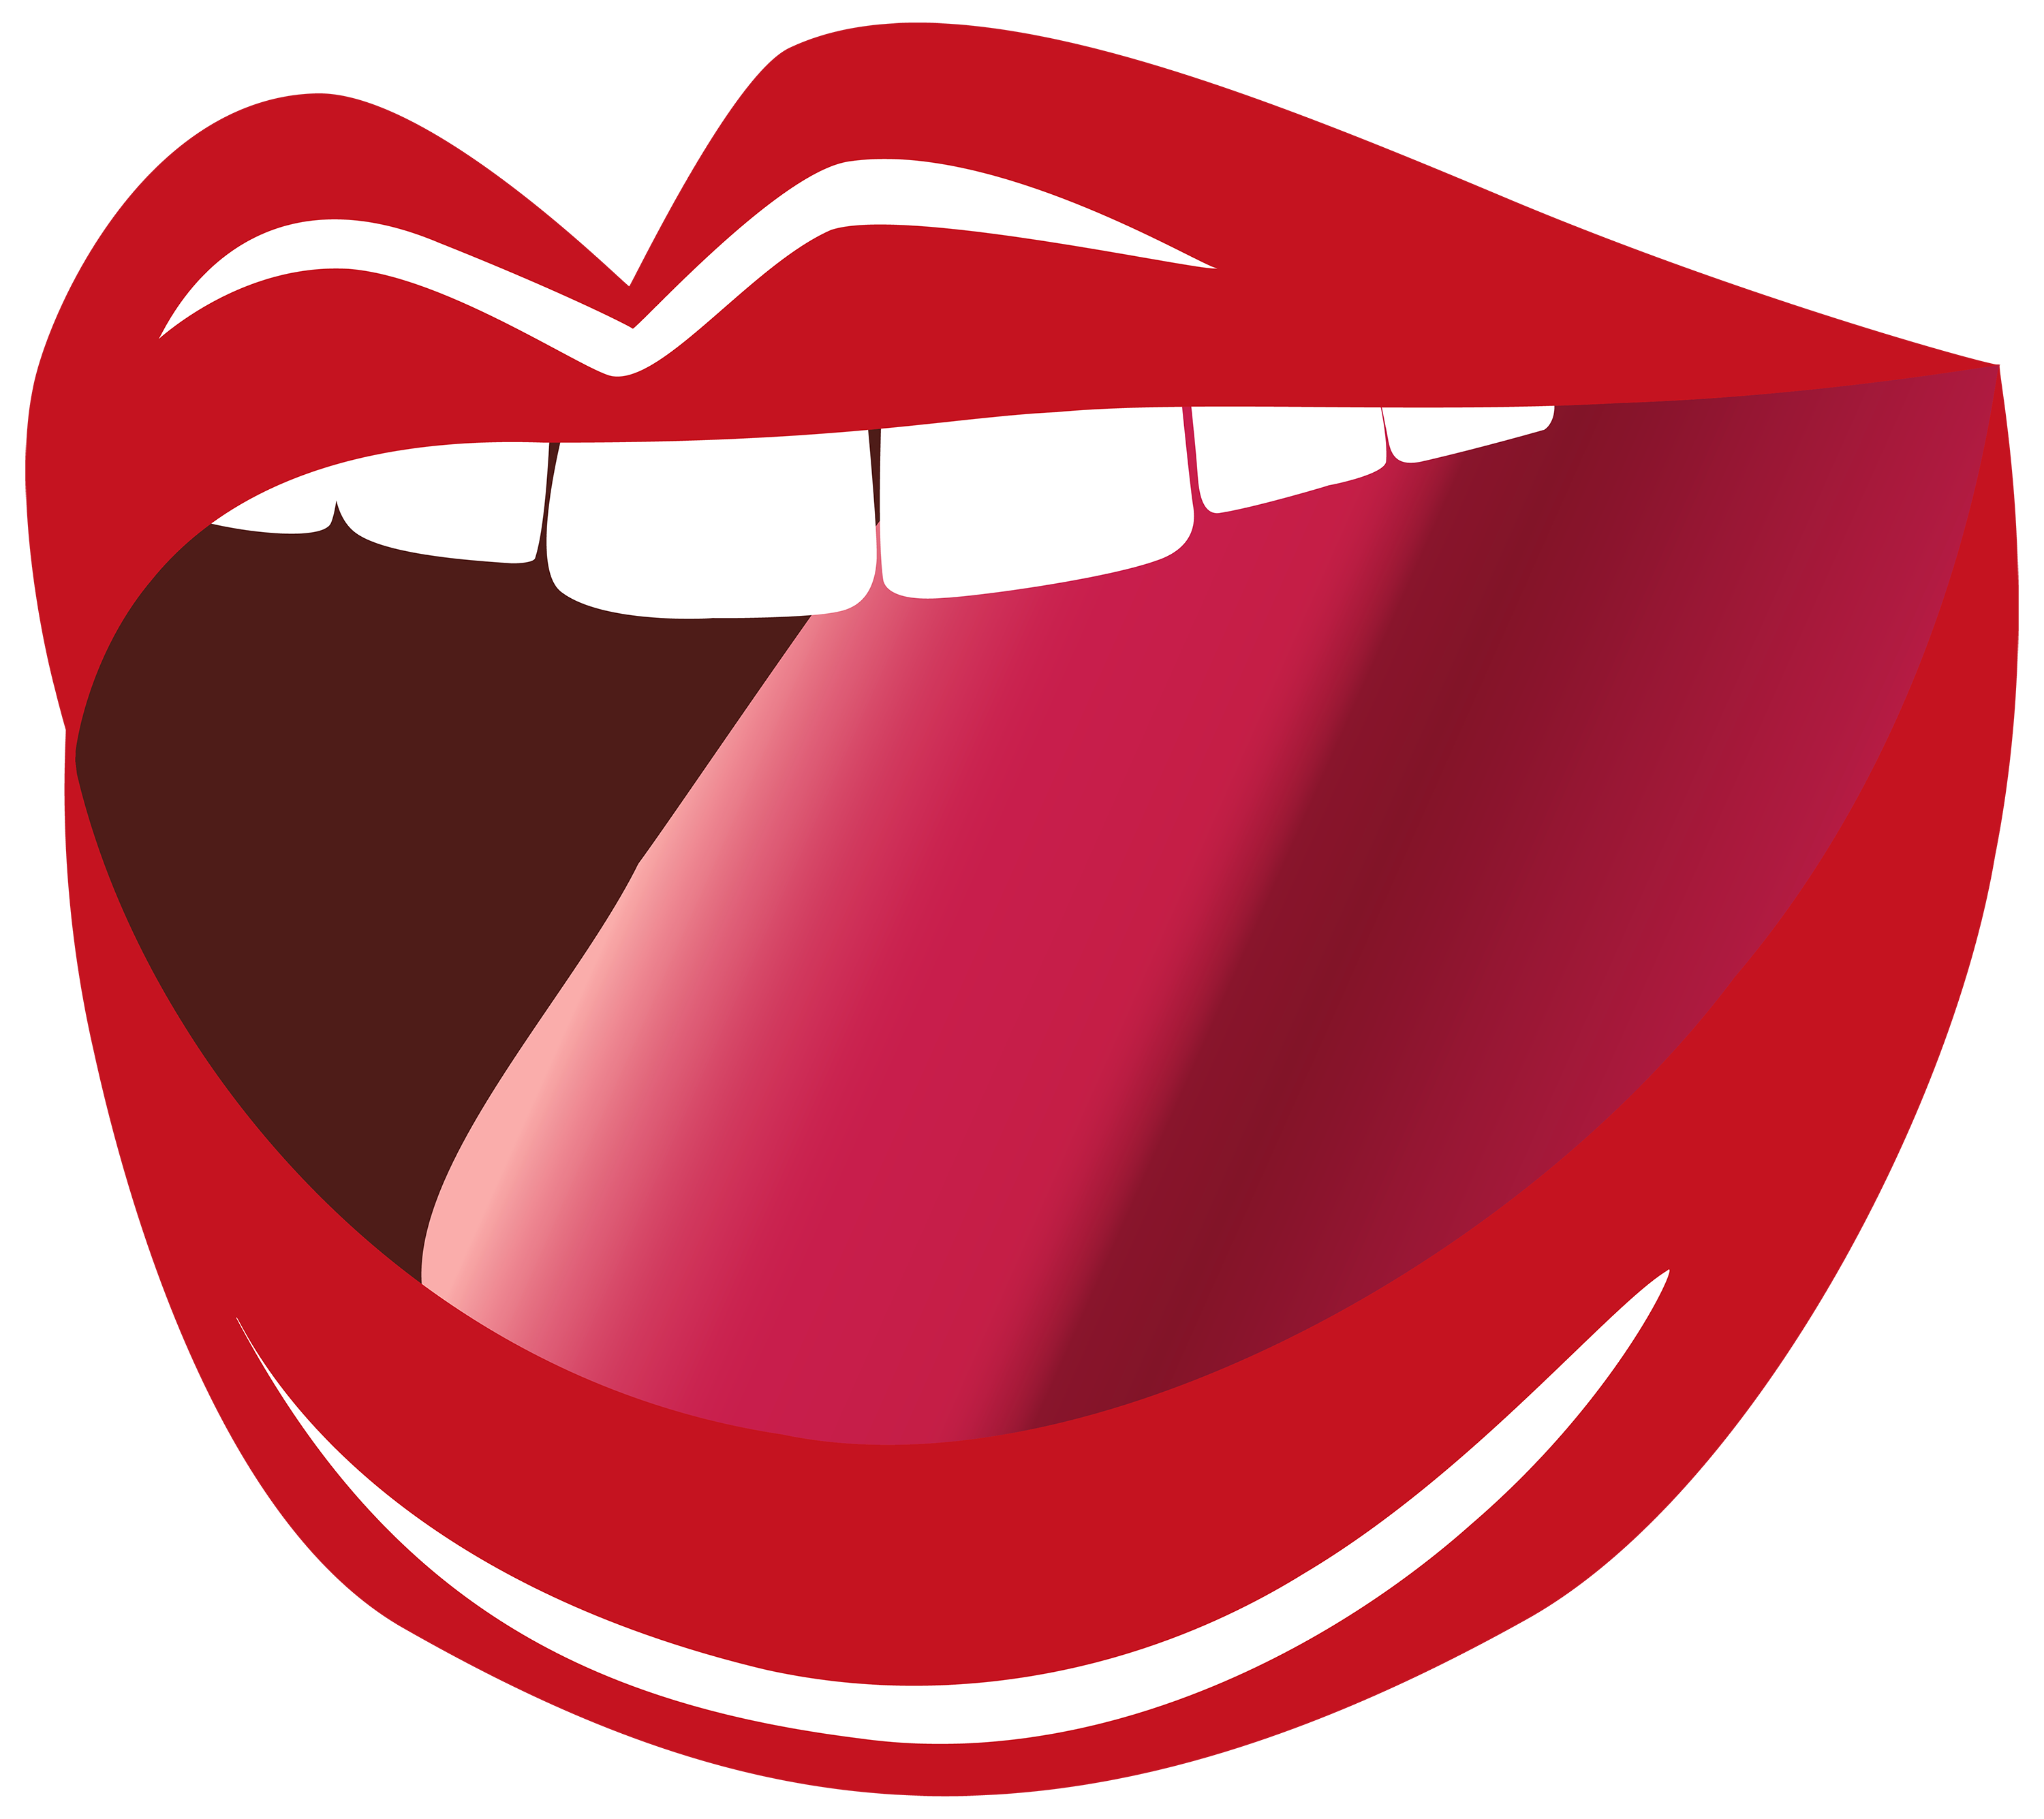 Clipart + Open Mouth - ClipArt Best